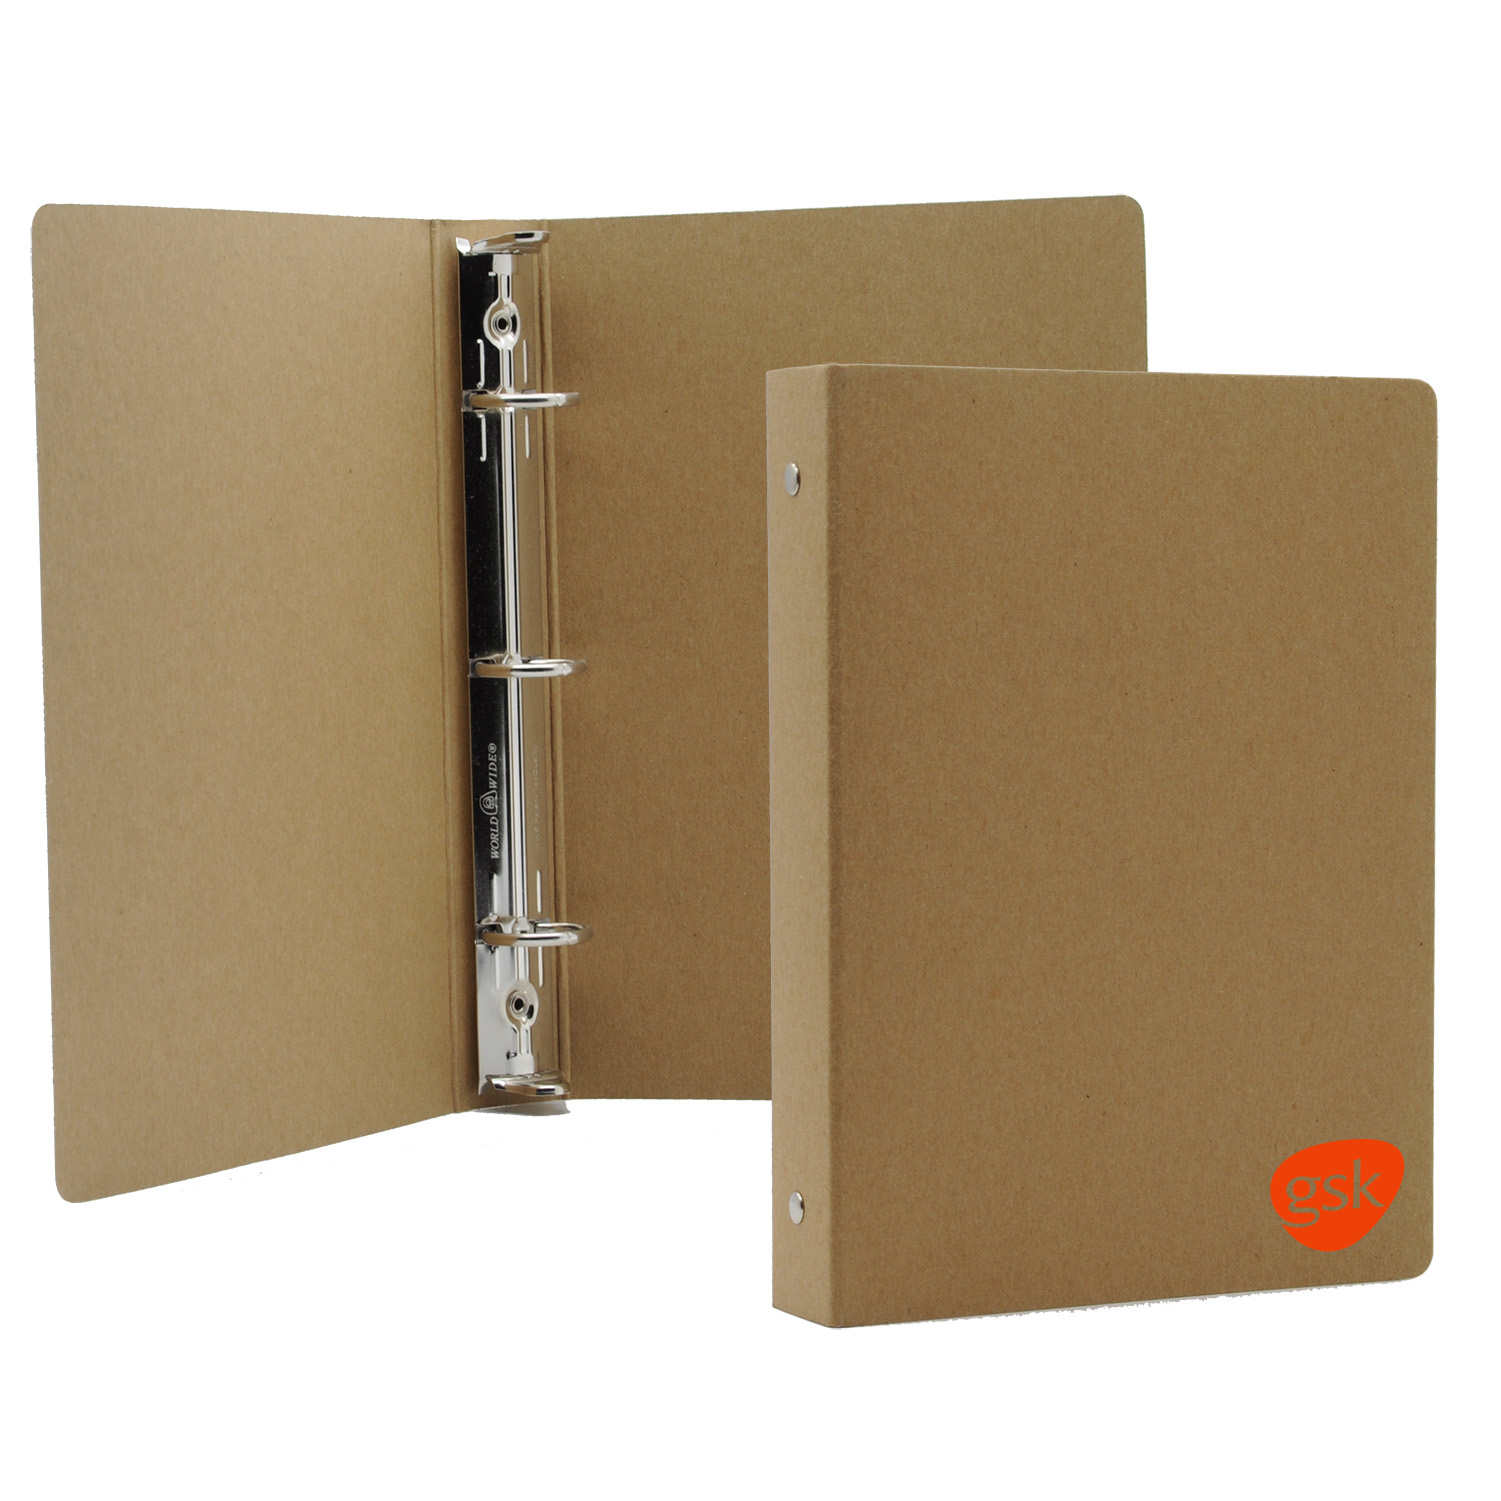 """Standard 3-Ring Binder - Deluxe Poly or Recycled Board (5.5""""x8.5"""")"""